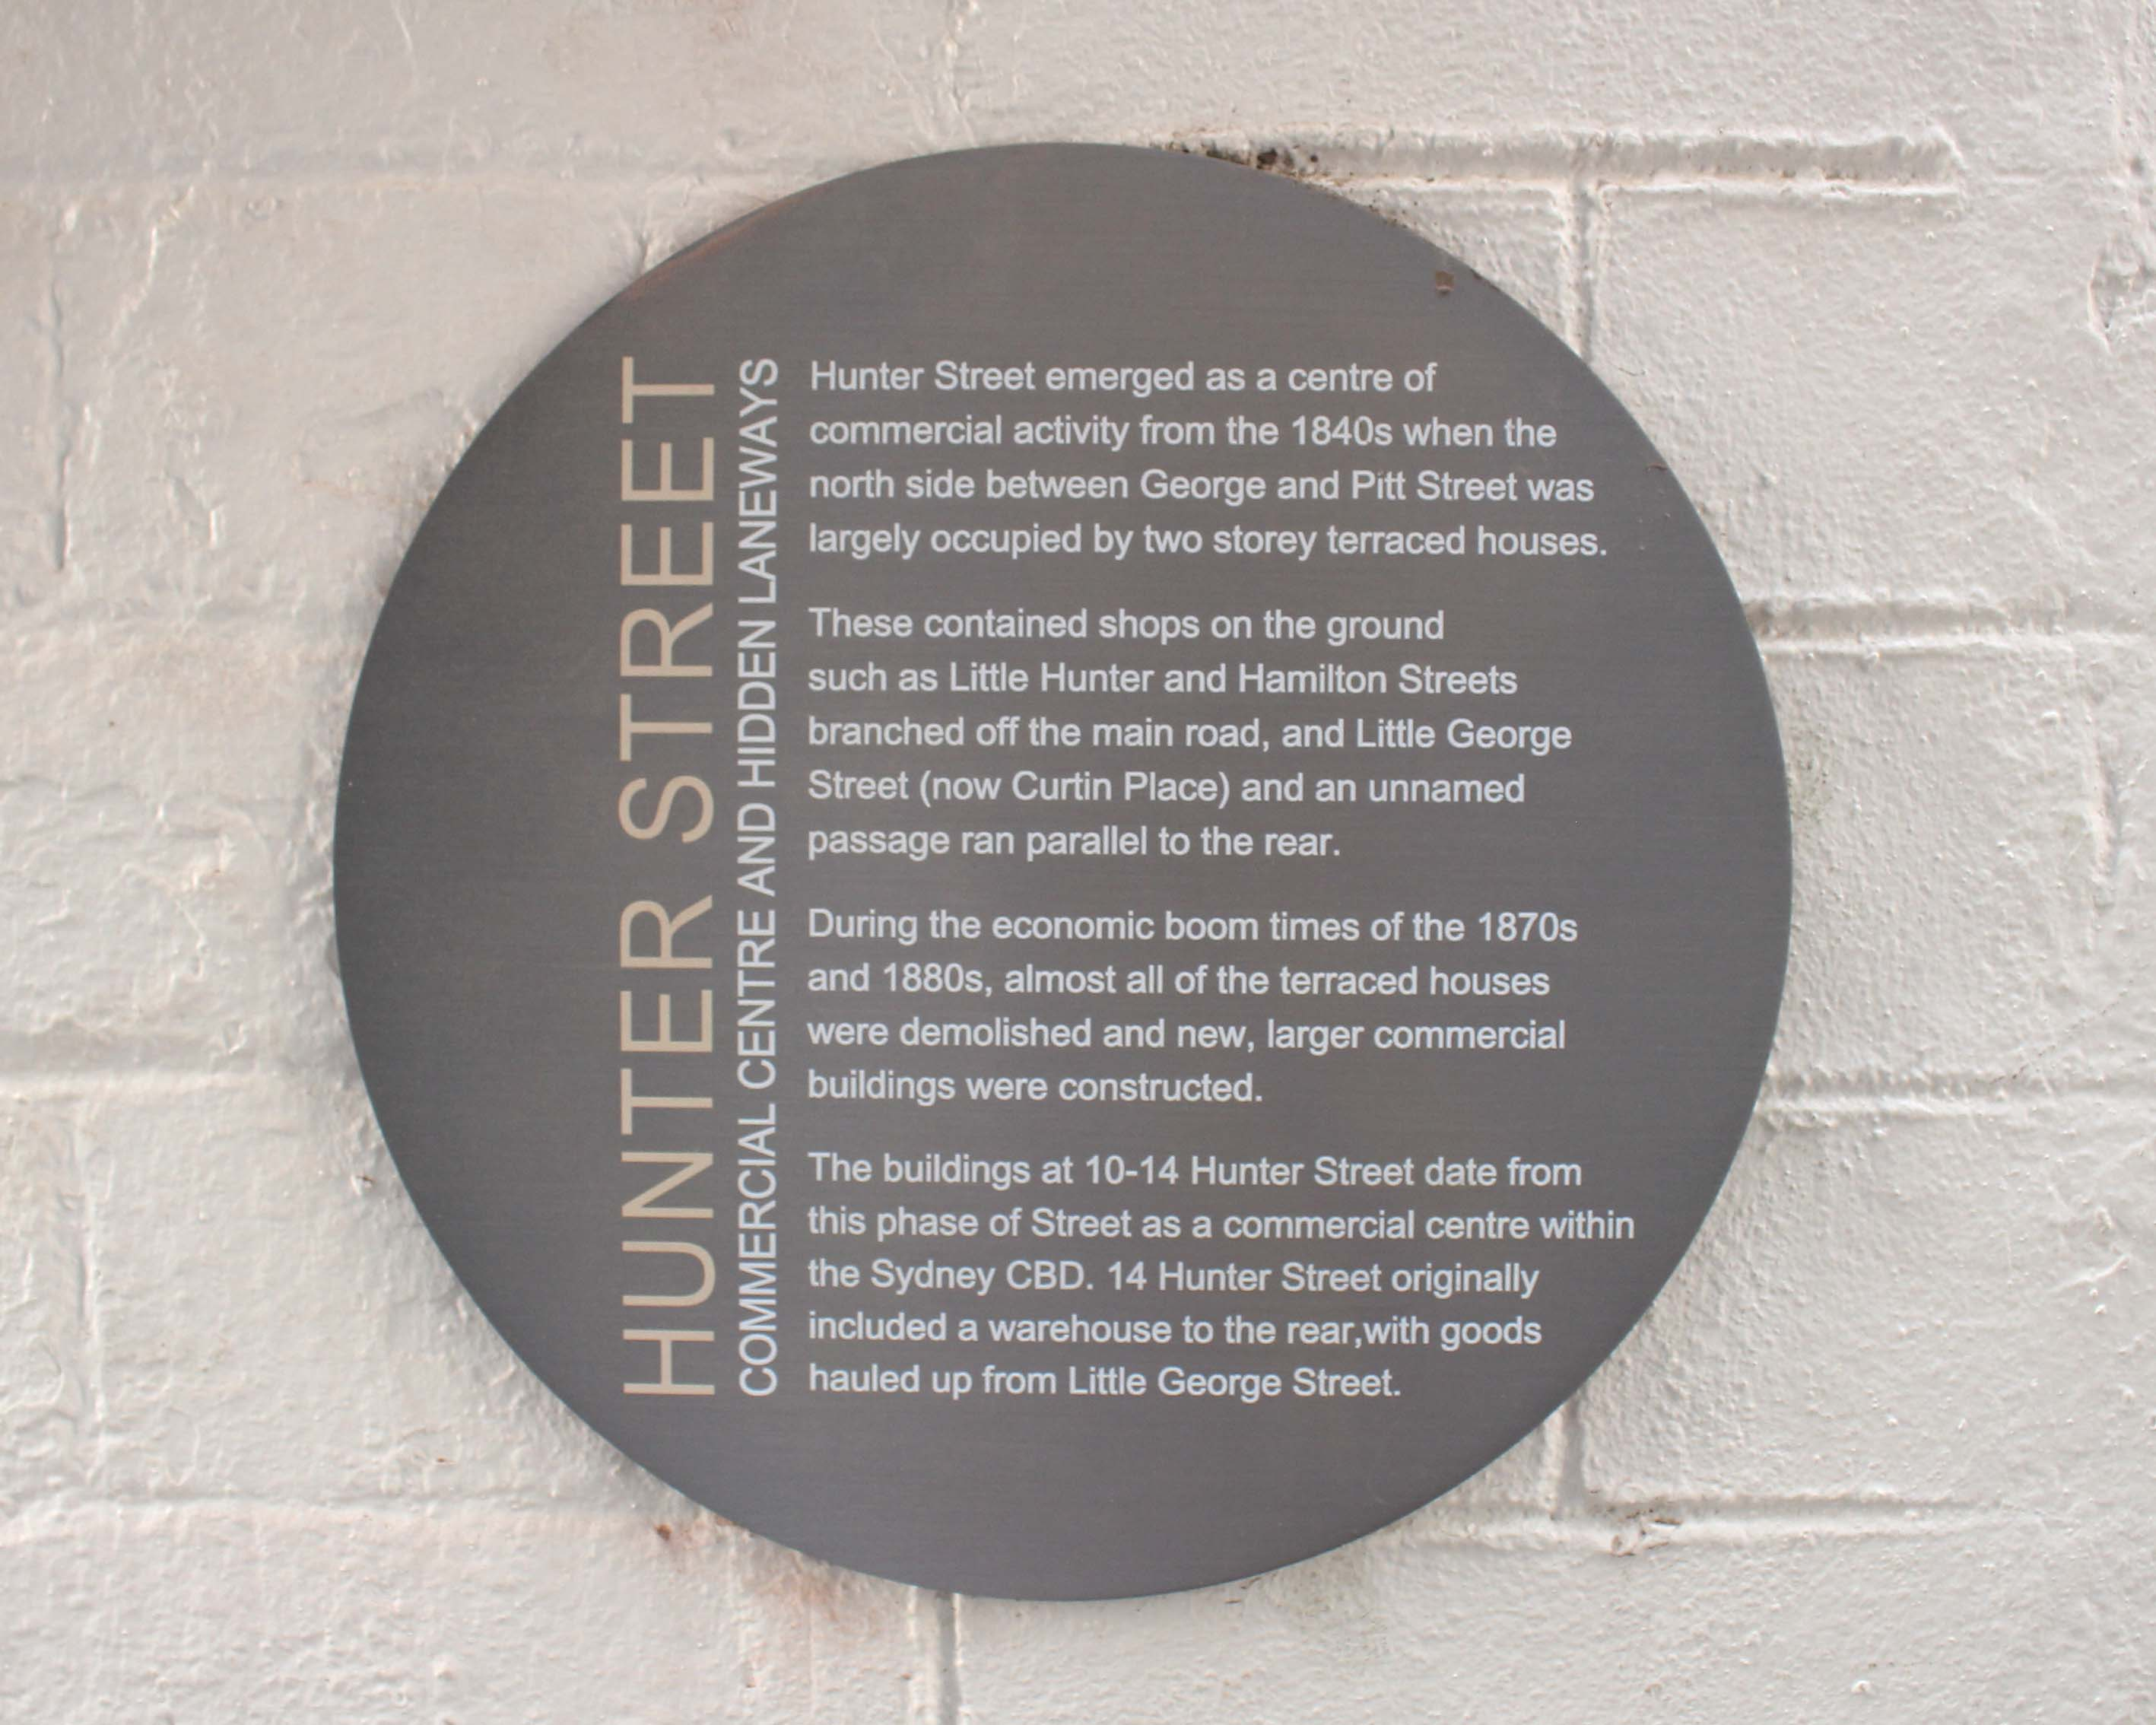 A stainless steel circular external wall plaque digitally printed showing the road map and intersection of George and Hunter Street.